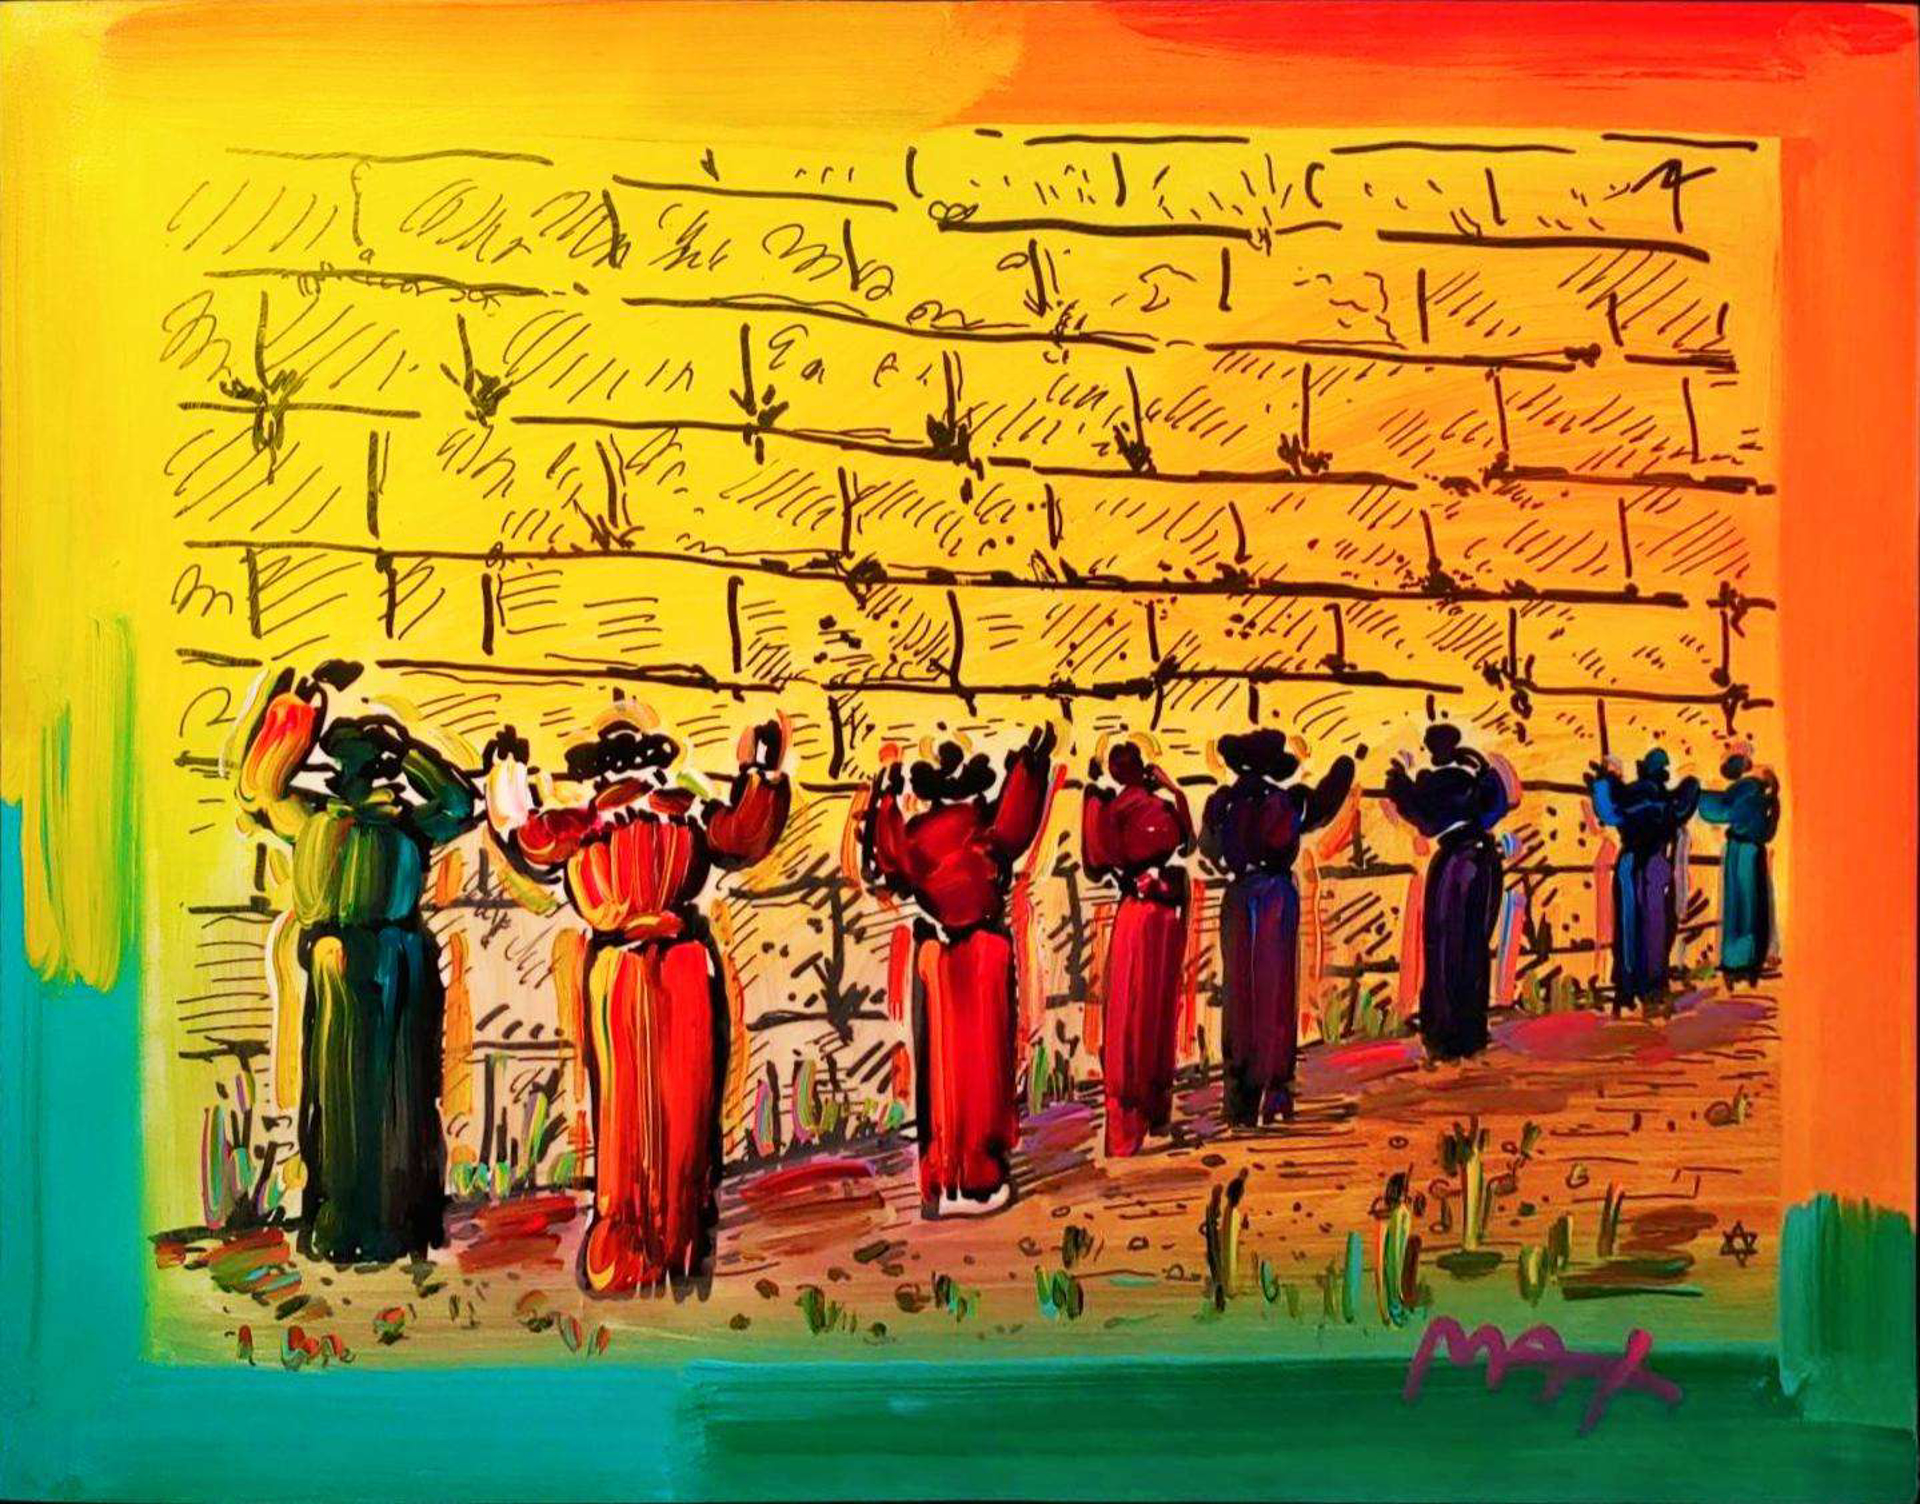 WESTERN WALL by Peter Max